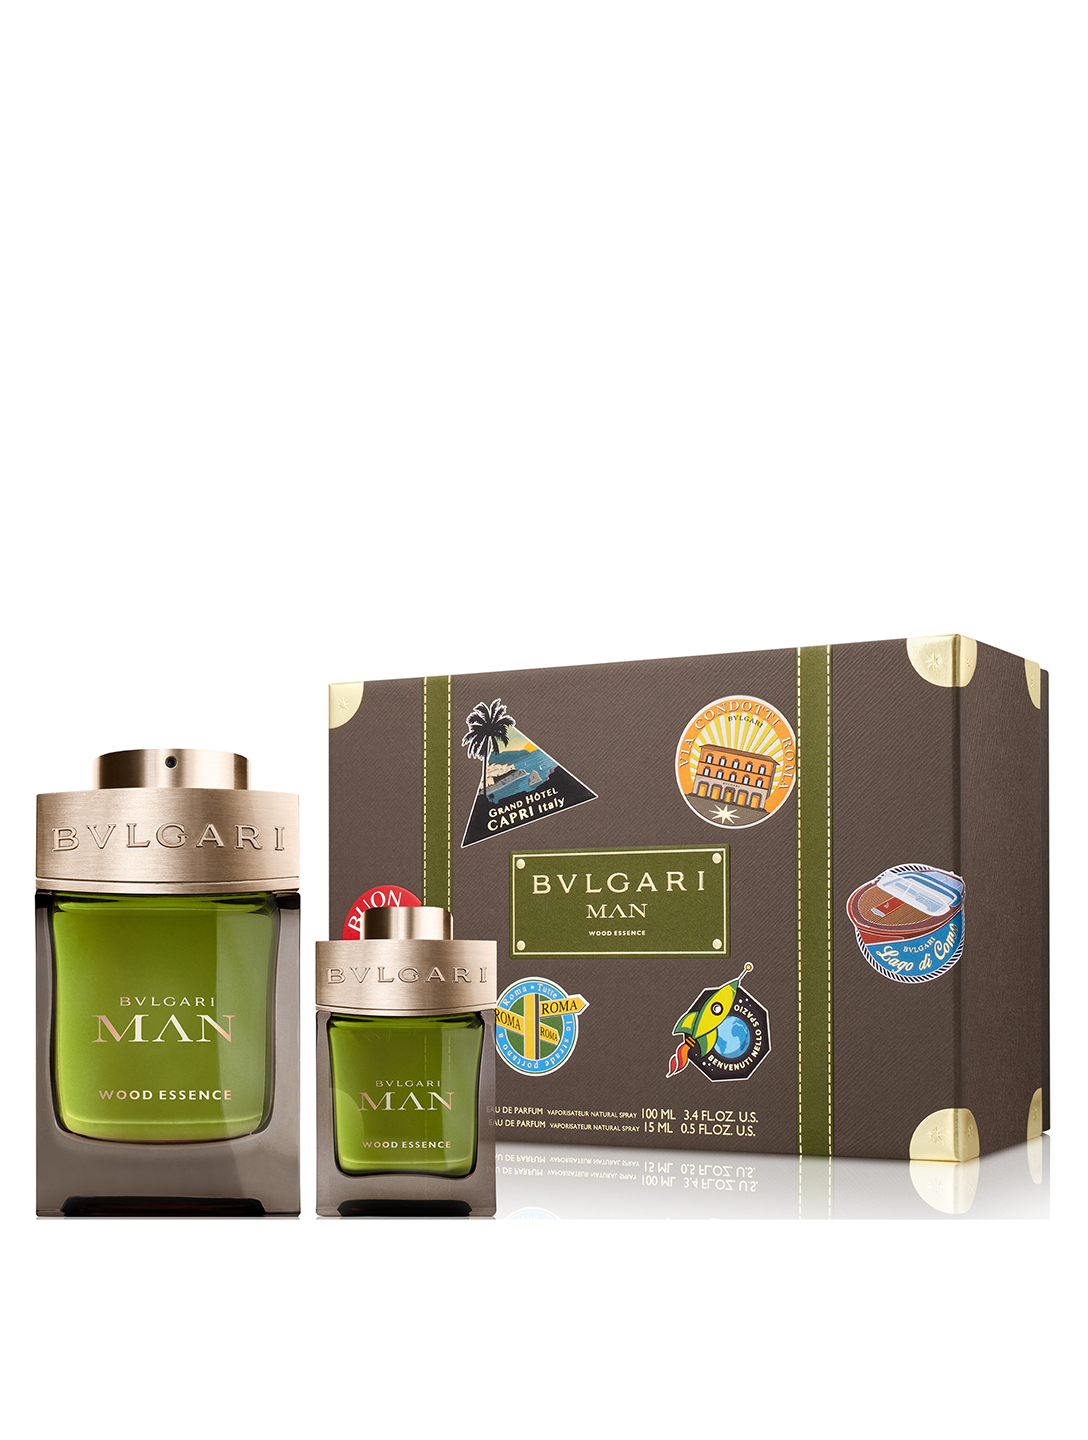 BVLGARI Duo-cadeau Bvlgari Man Wood Essence Beauté